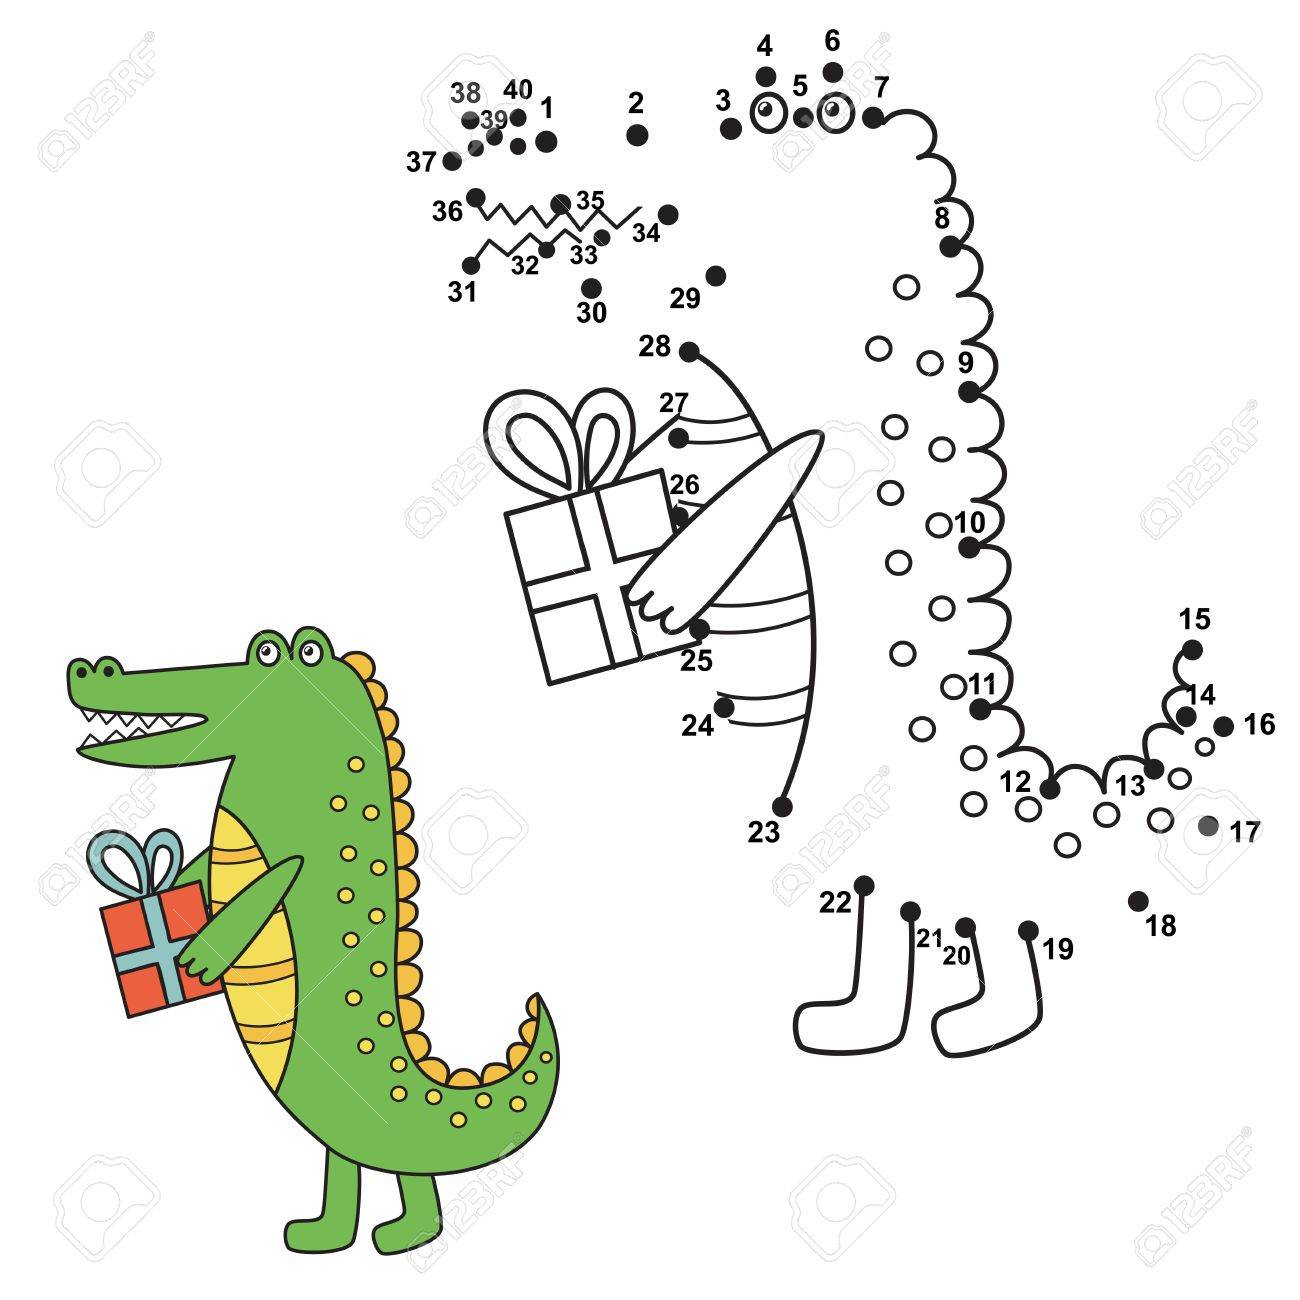 connect the dots to draw the cute alligator and color it